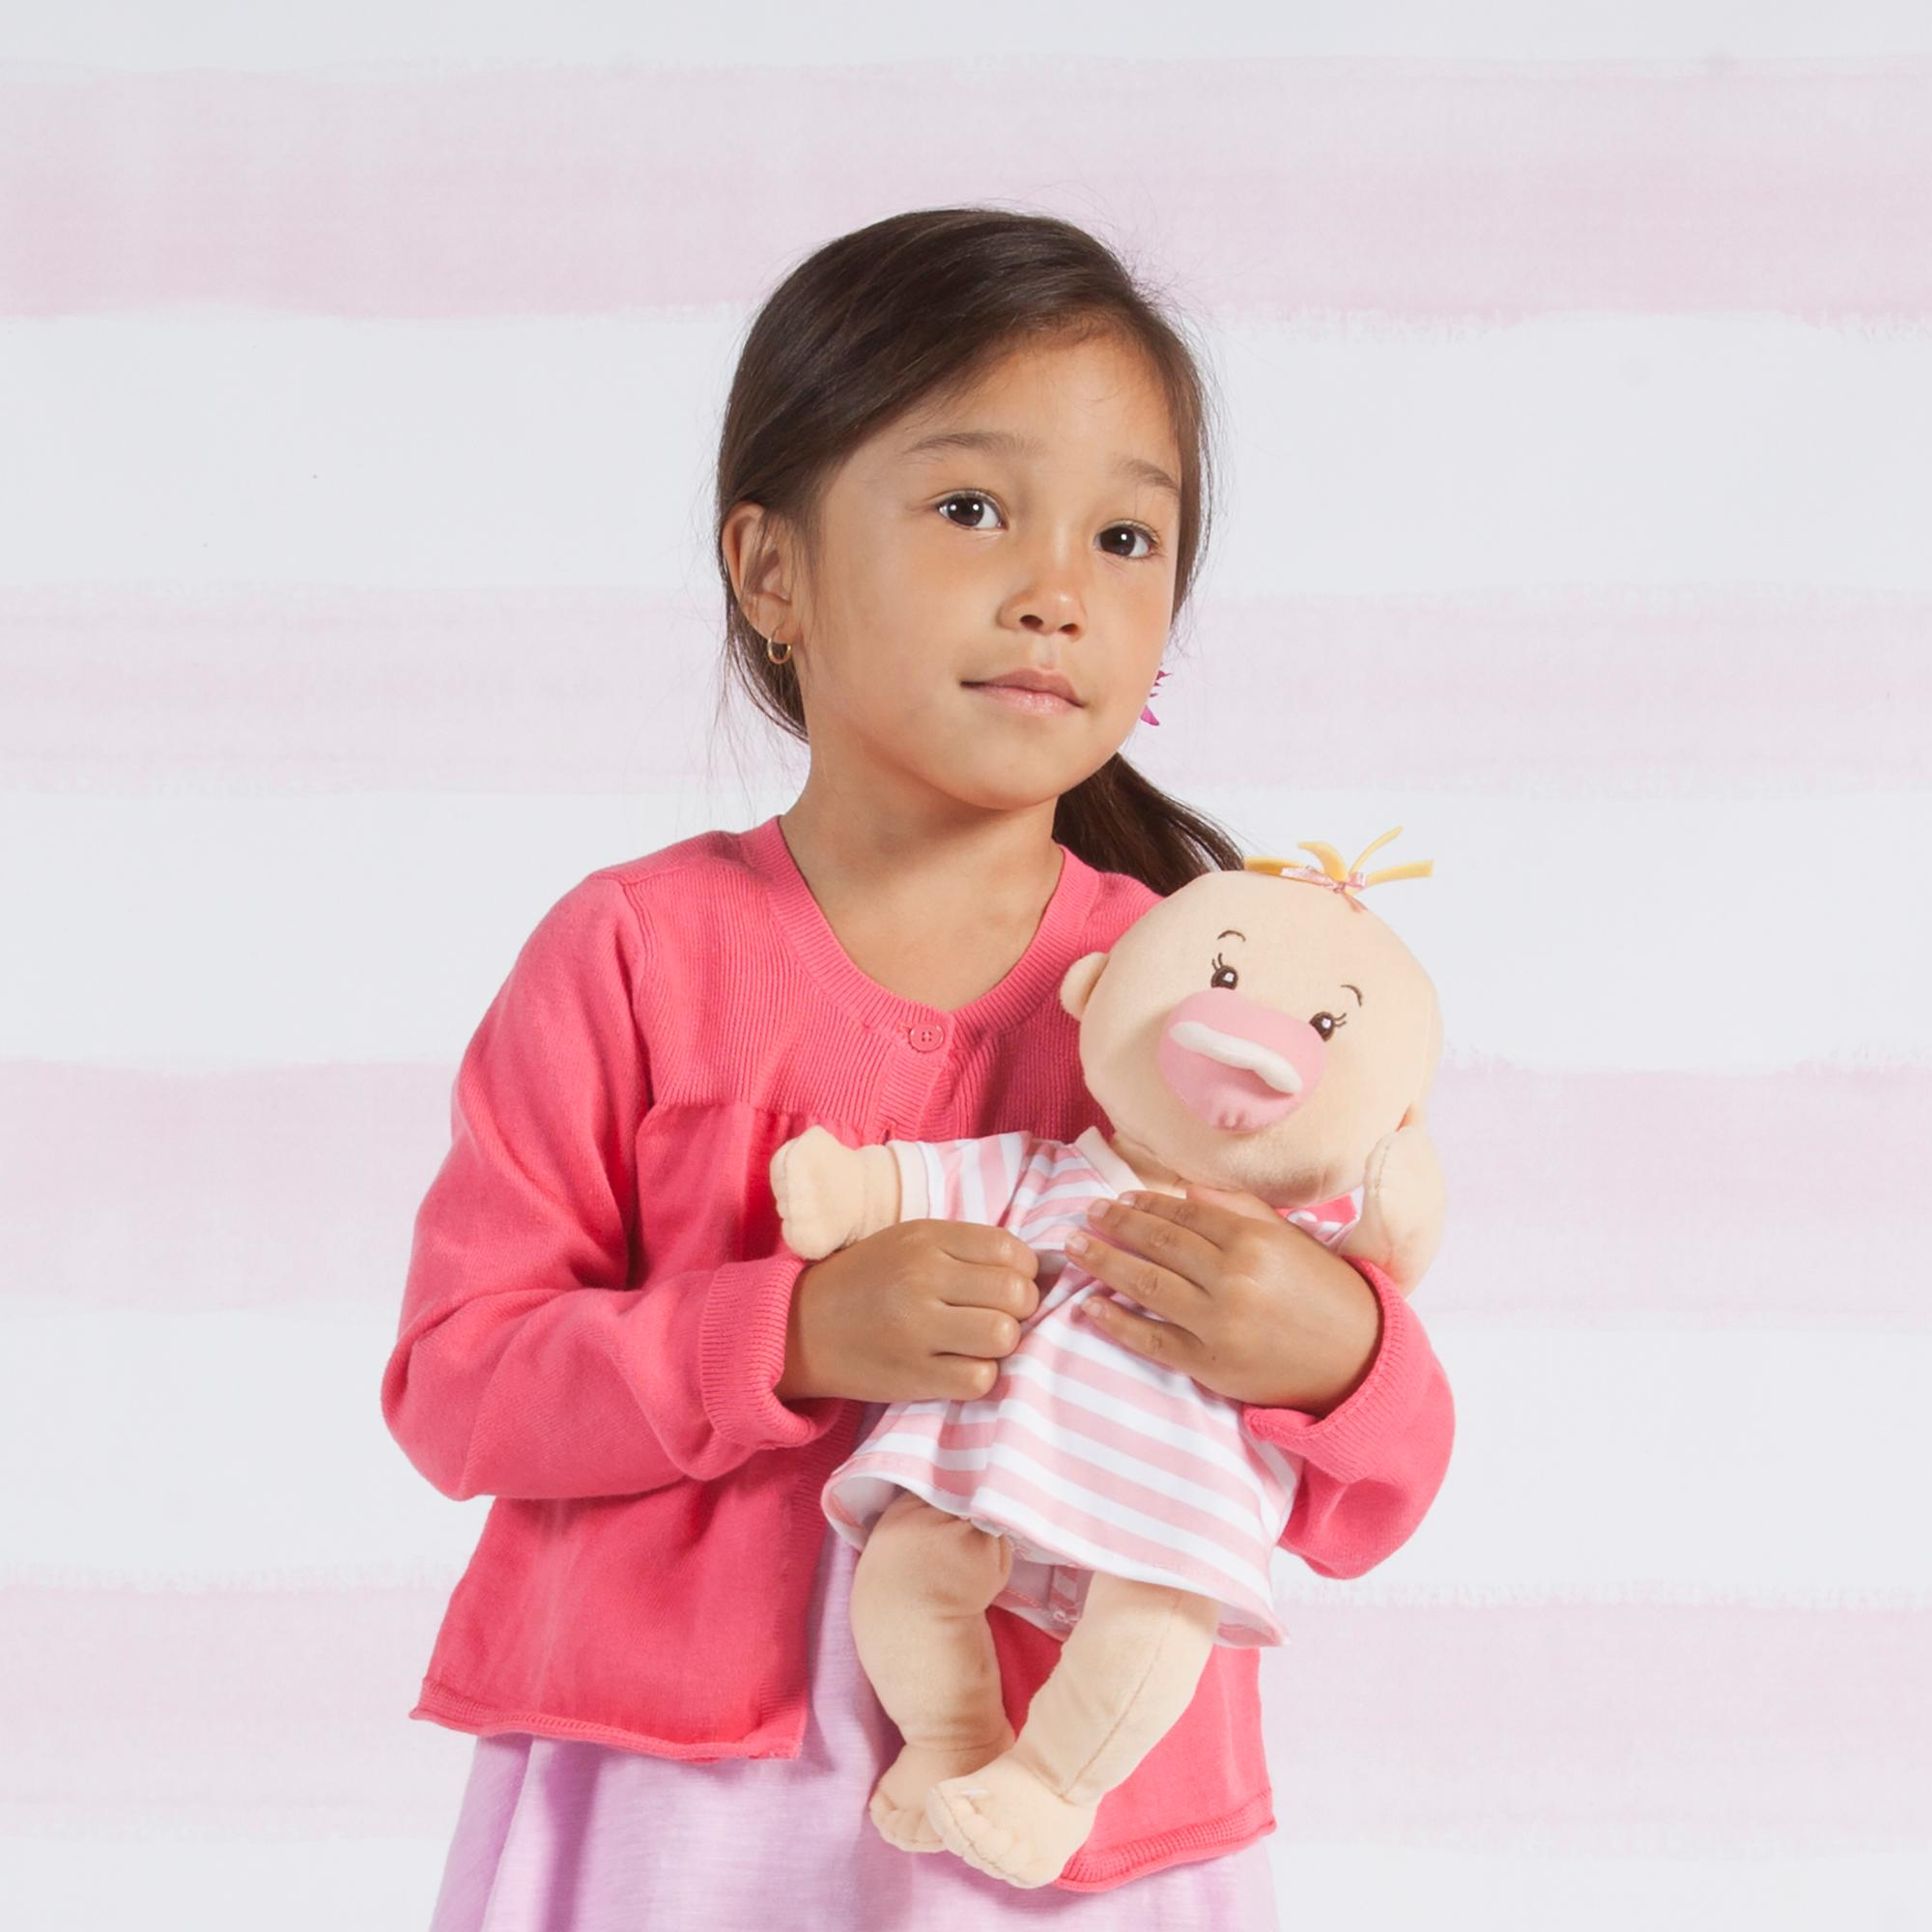 manhattan toy baby stella peach soft first baby doll for ages 1 year and up 15. Black Bedroom Furniture Sets. Home Design Ideas